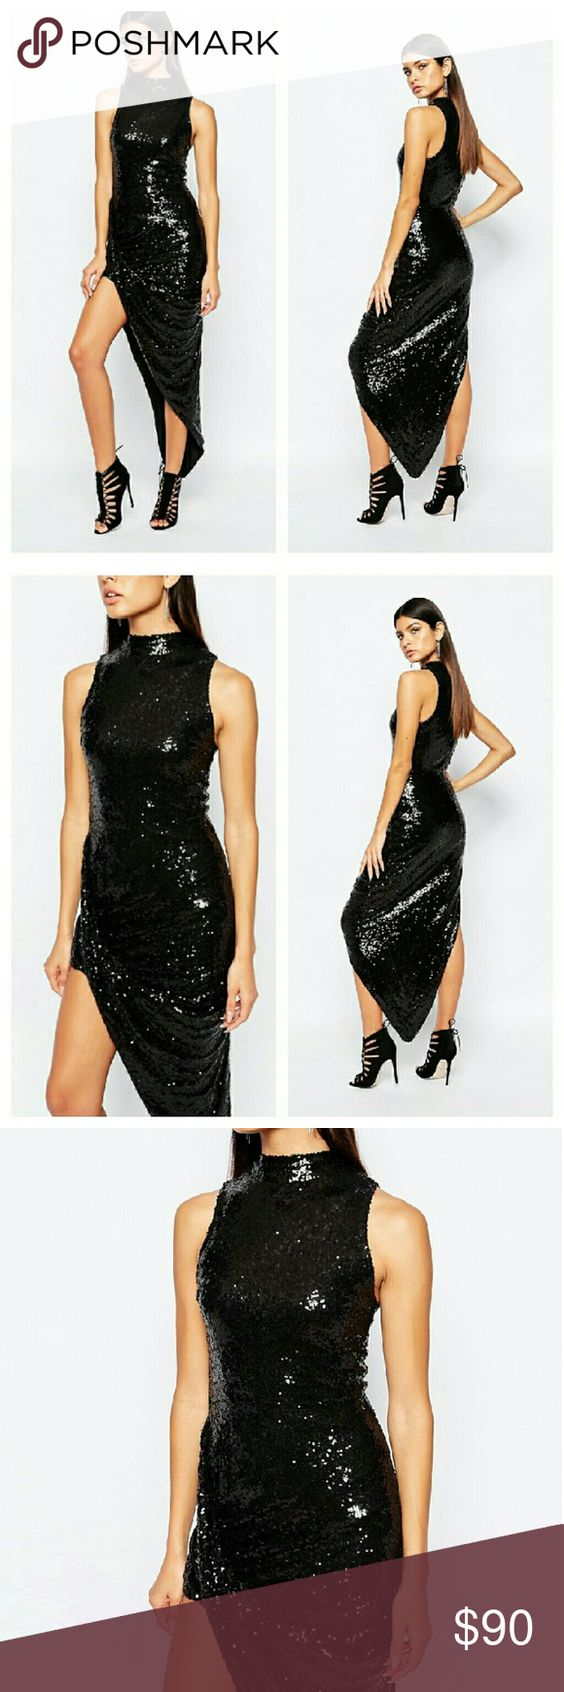 Black dress comments - Asos Black Sequin Asymmetrical Maxi Dress Nwts See Comments For More Info Asos Dresses